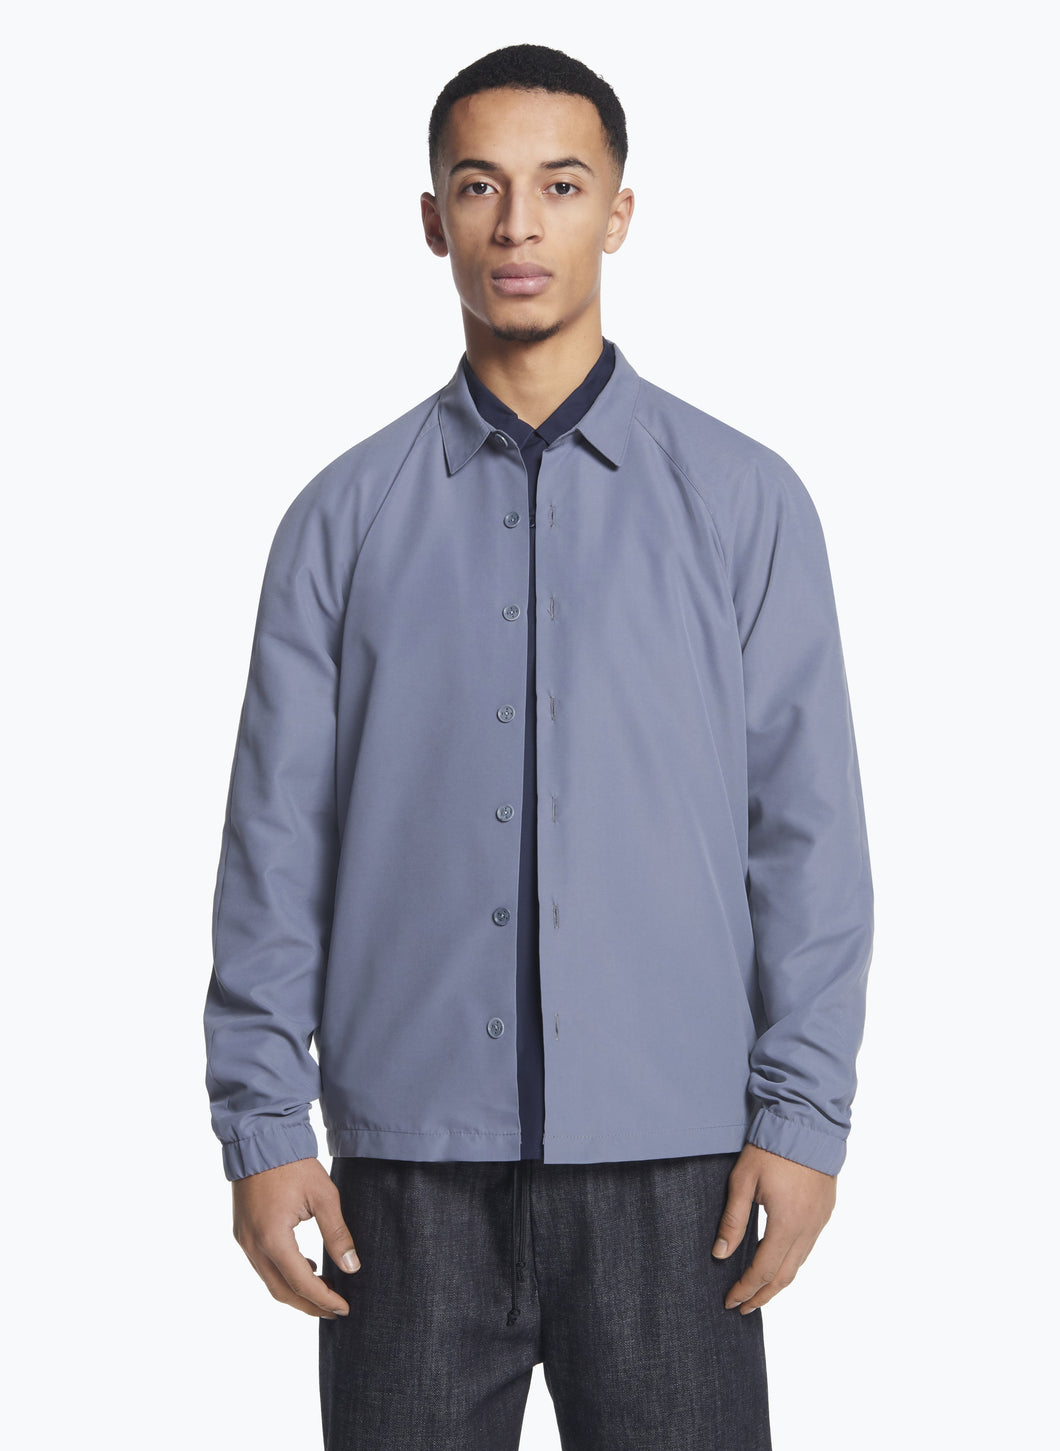 Raglan Sleeve Overshirt in Grey Microfiber